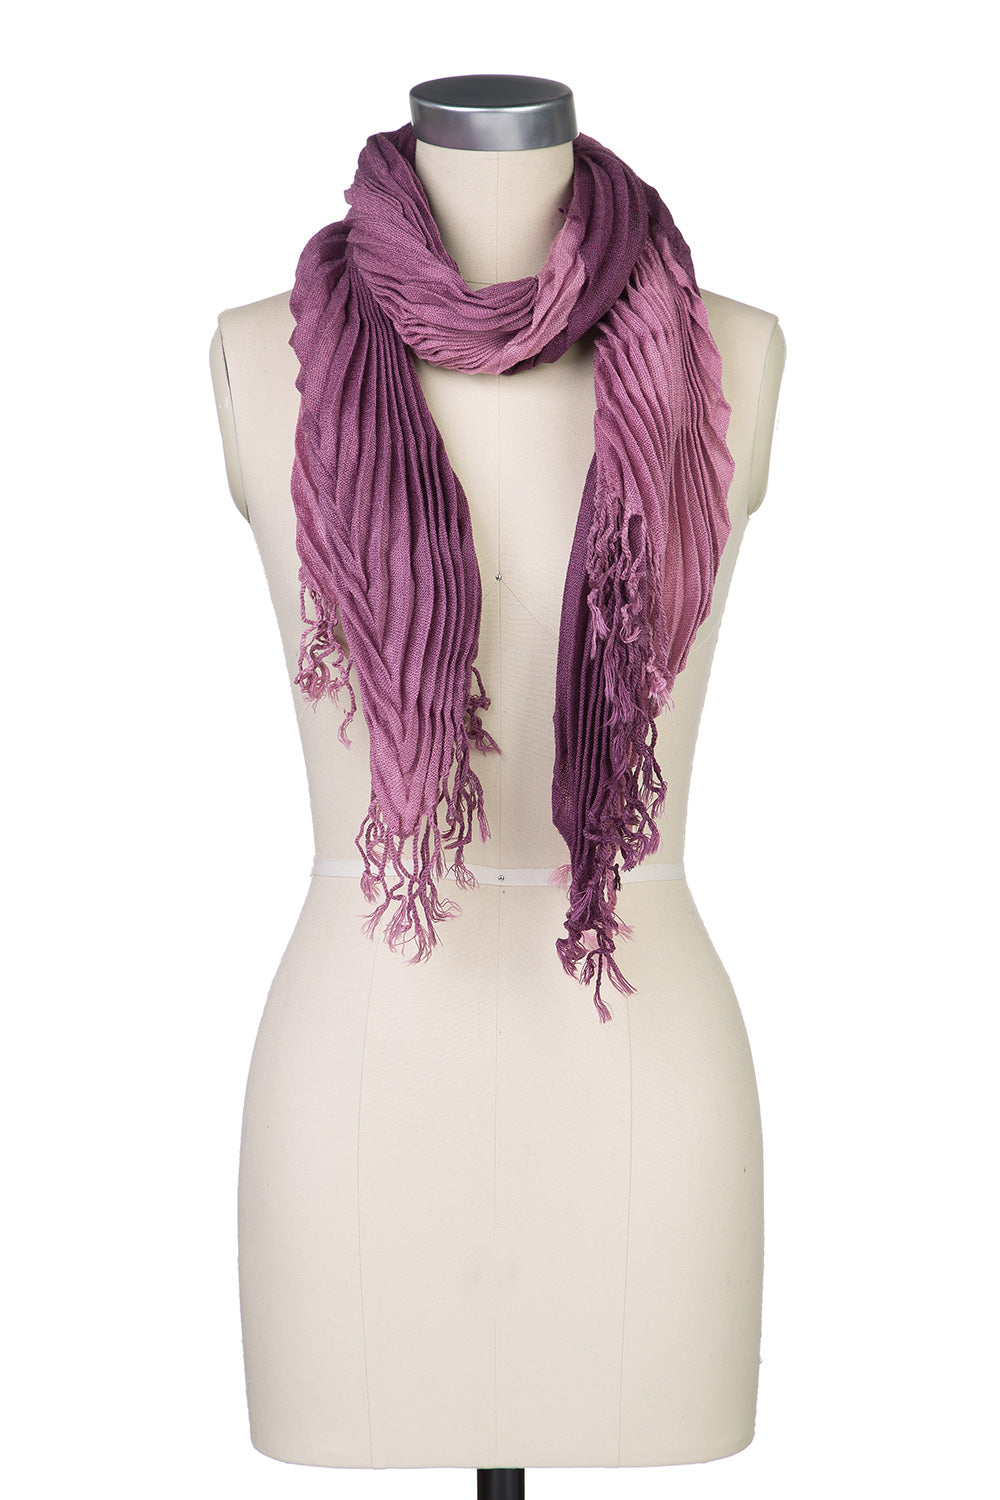 Type 2 Accordion Ombre Scarf in Purple/Lavender